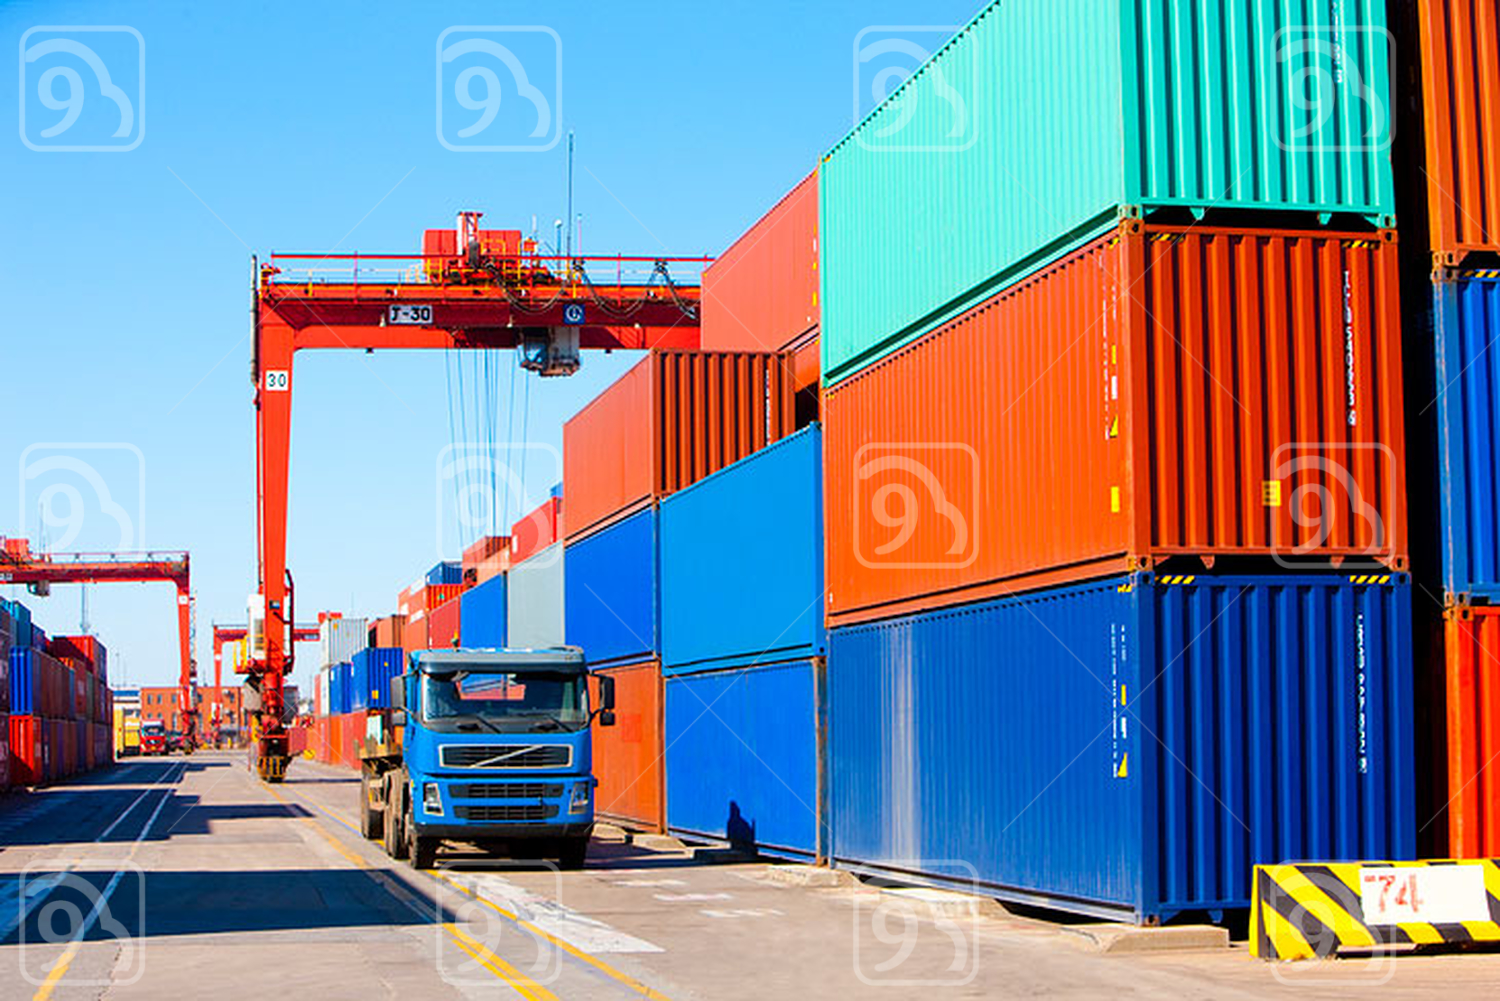 Cranes, trucks and cargo containers in shipping dock